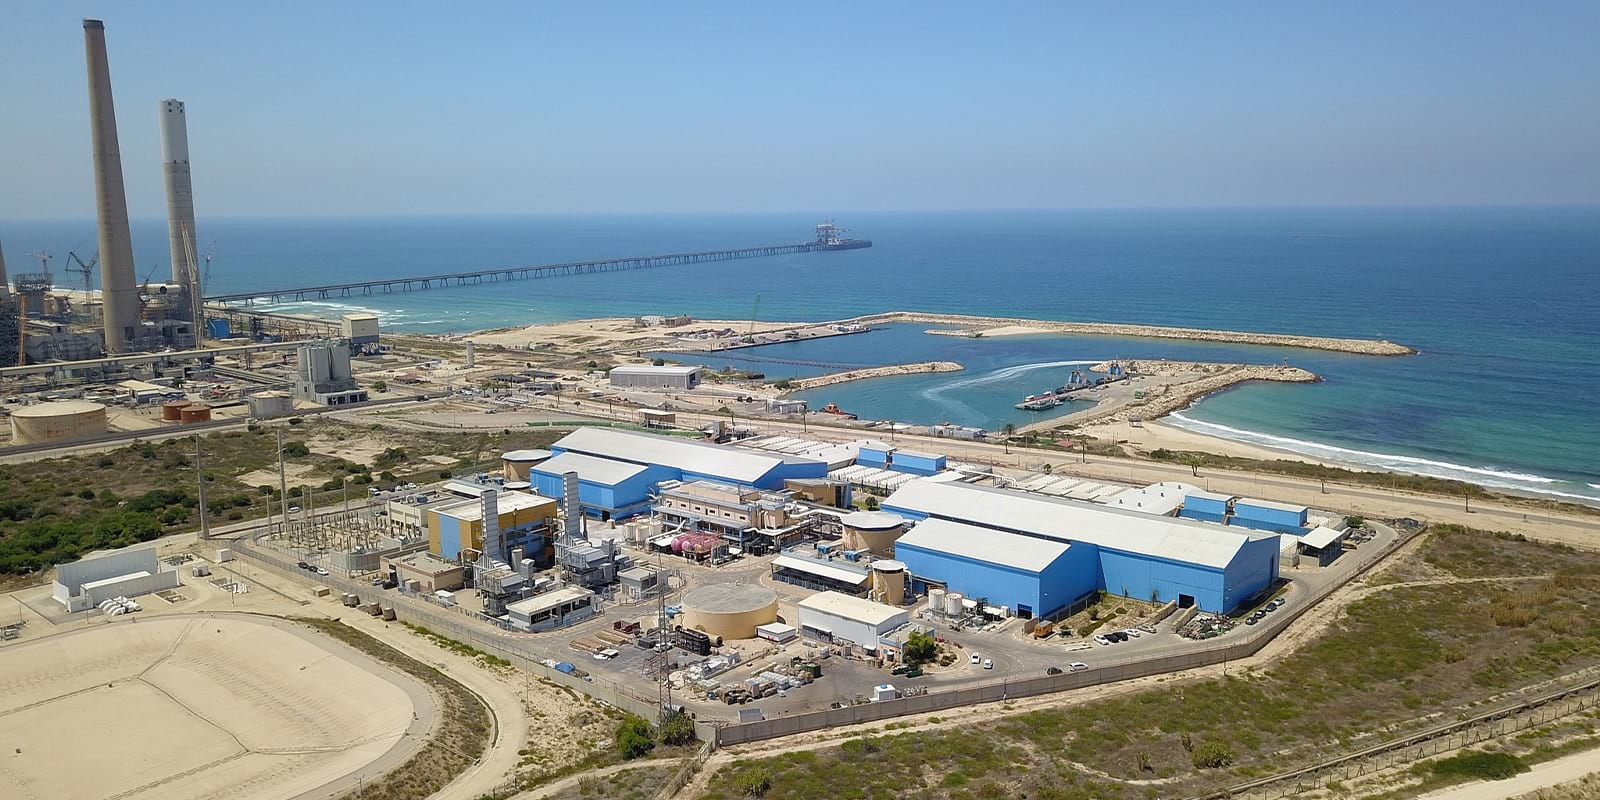 The Ashkelon desalination facility, one of the largest in the world, is one of five plants along the Mediterranean Sea providing Israelis with 65 percent of their drinking water.